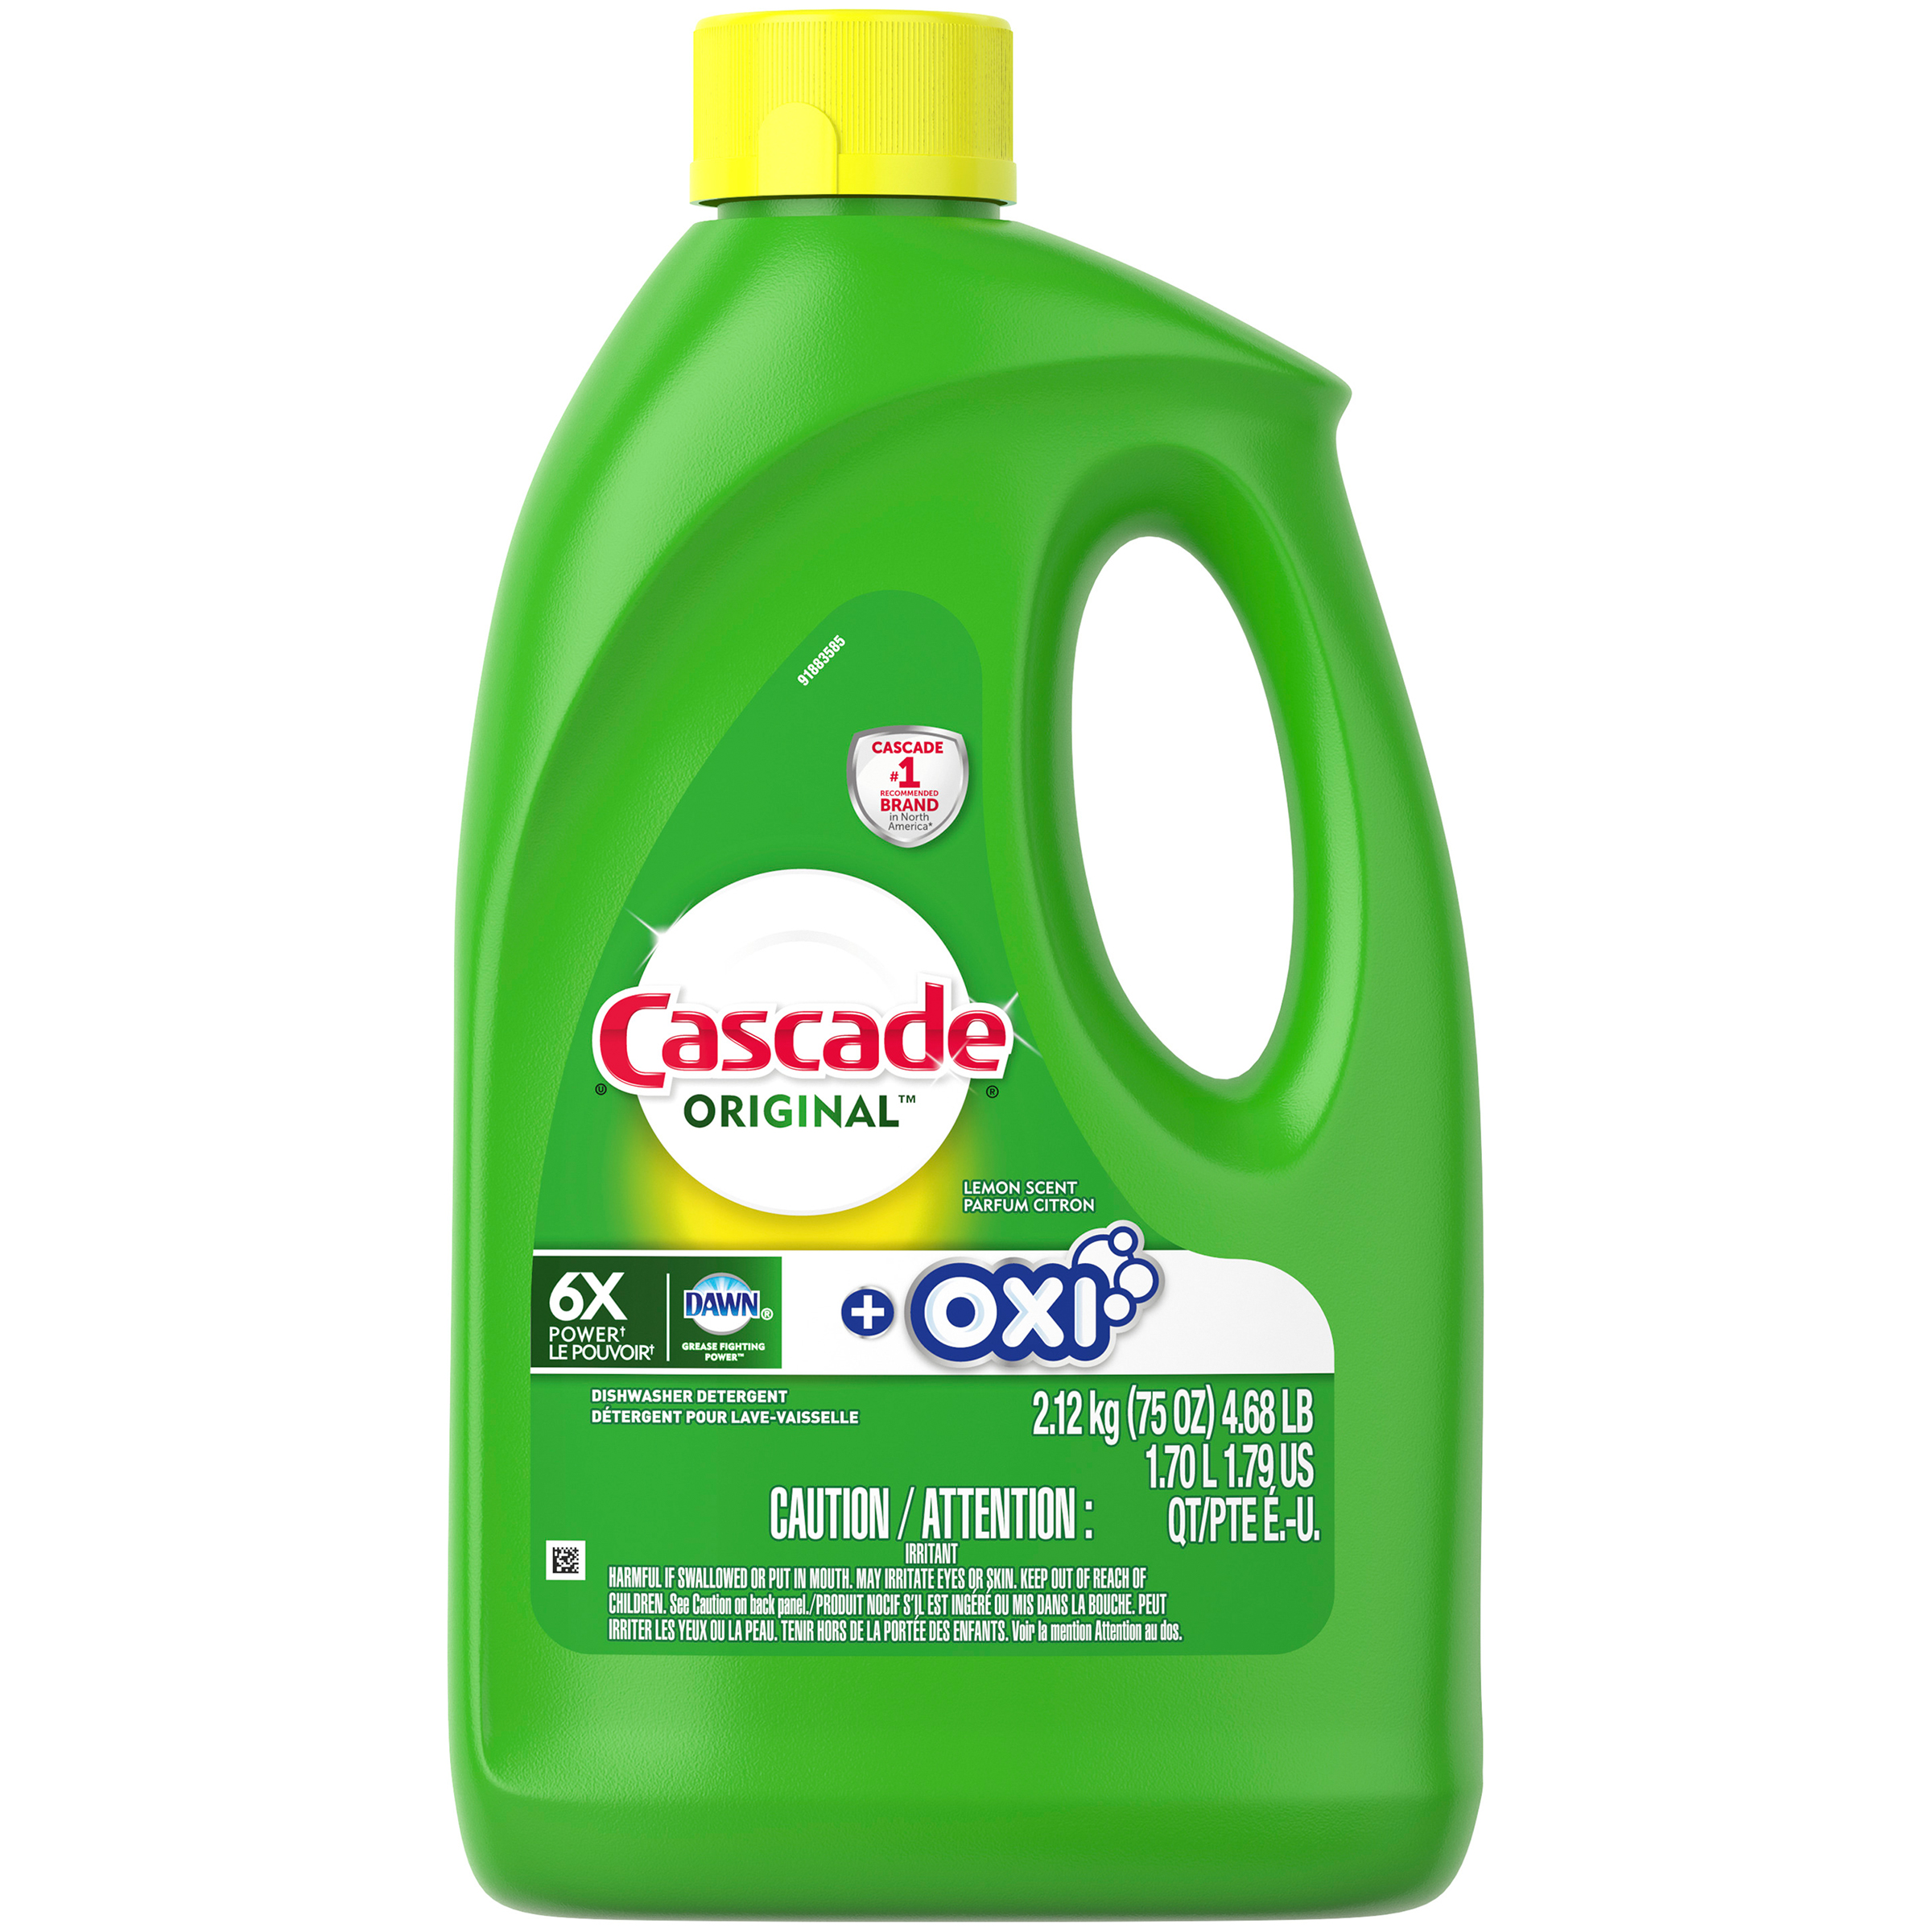 Ewg S Guide To Healthy Cleaning Cascade Cleaner Ratings